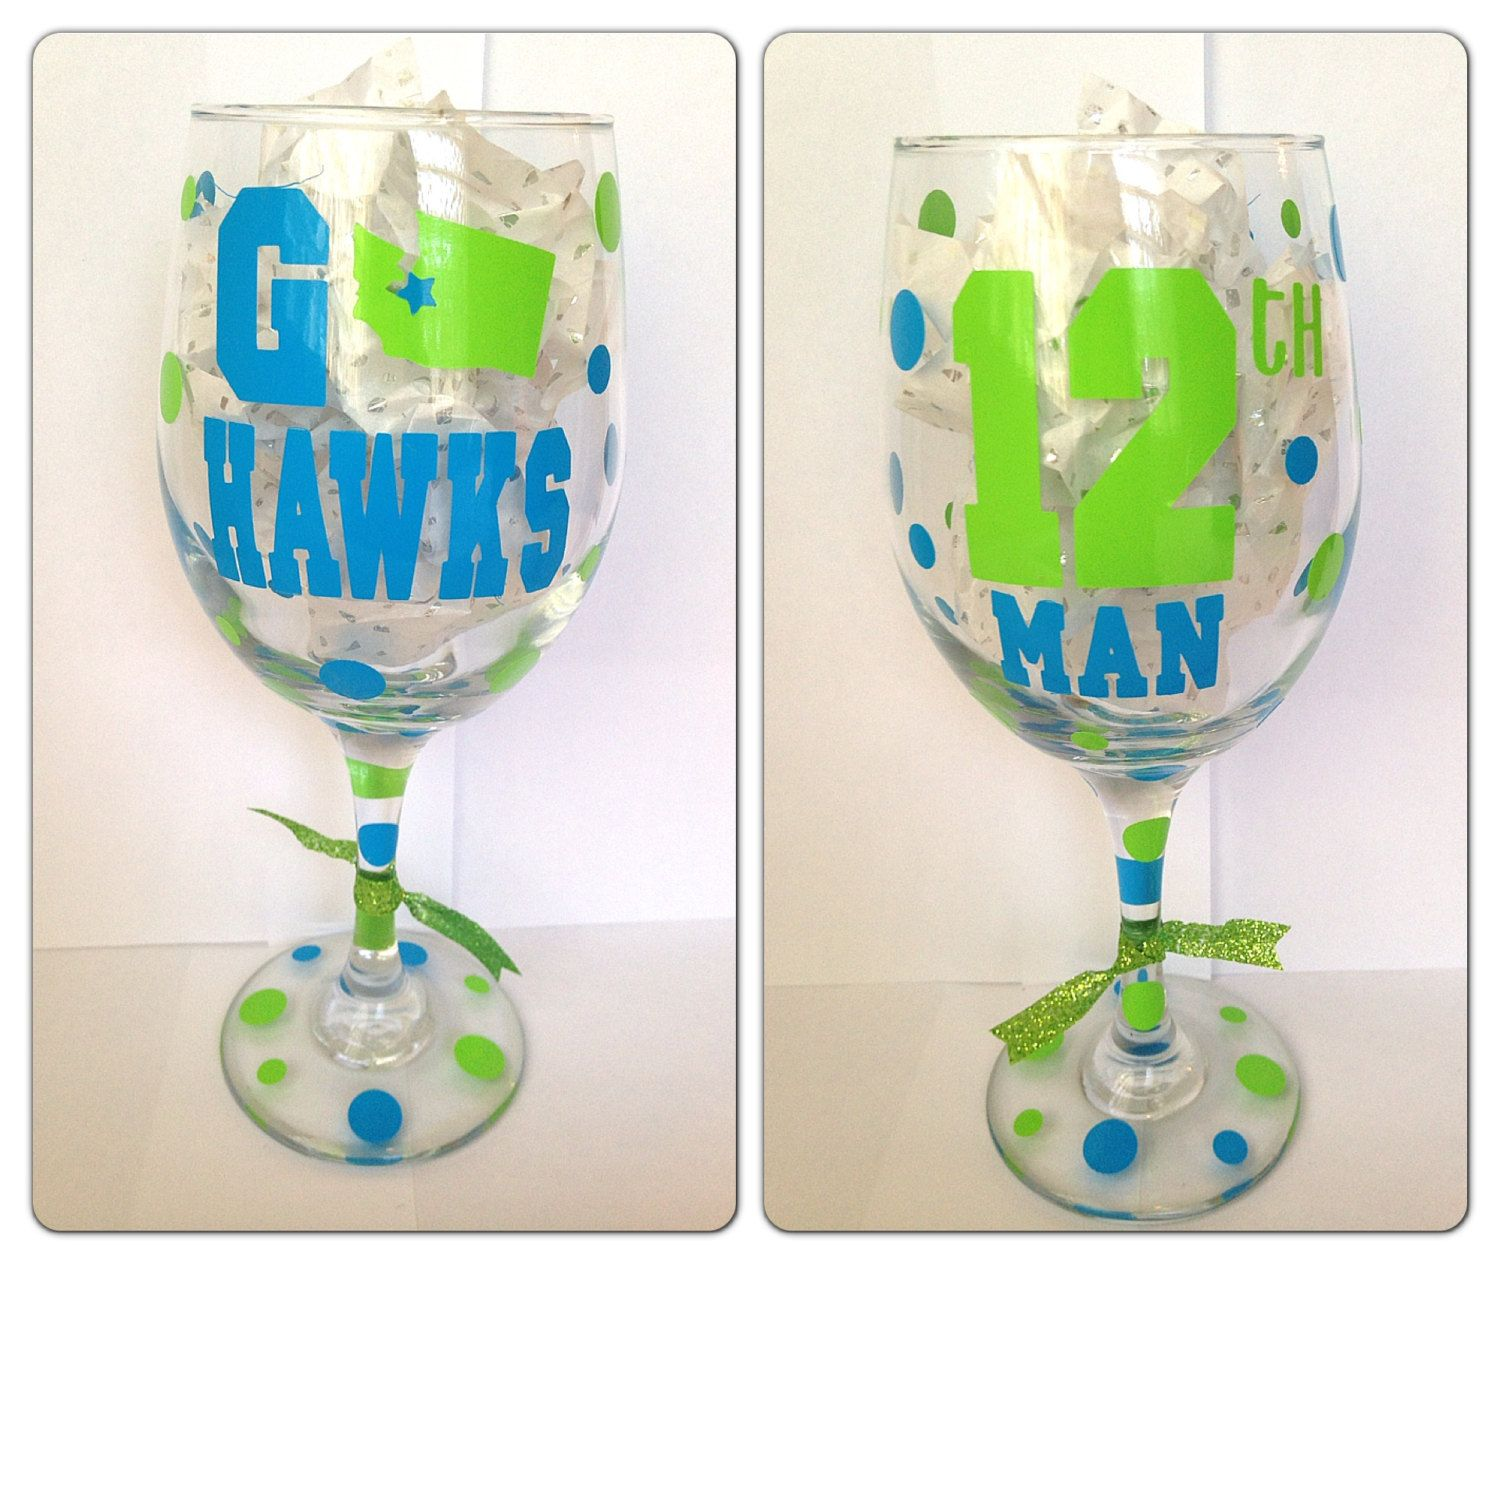 Seattle Seahawks Wine Glass 12th man.. can by CreateBeautywithLove, $20.00